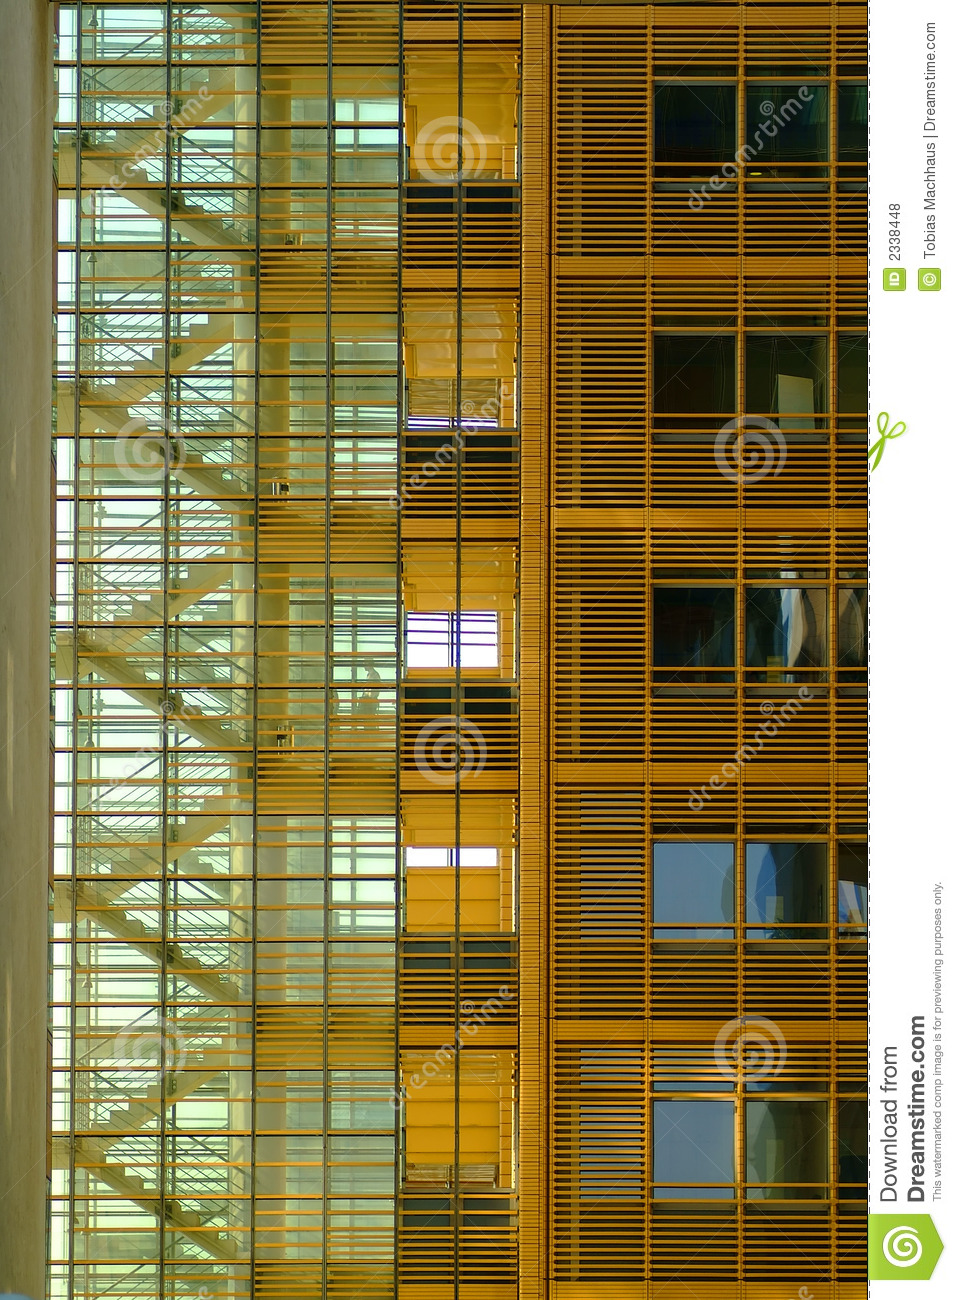 Office Building Staircase Royalty Free Stock Photos  Image 2338448